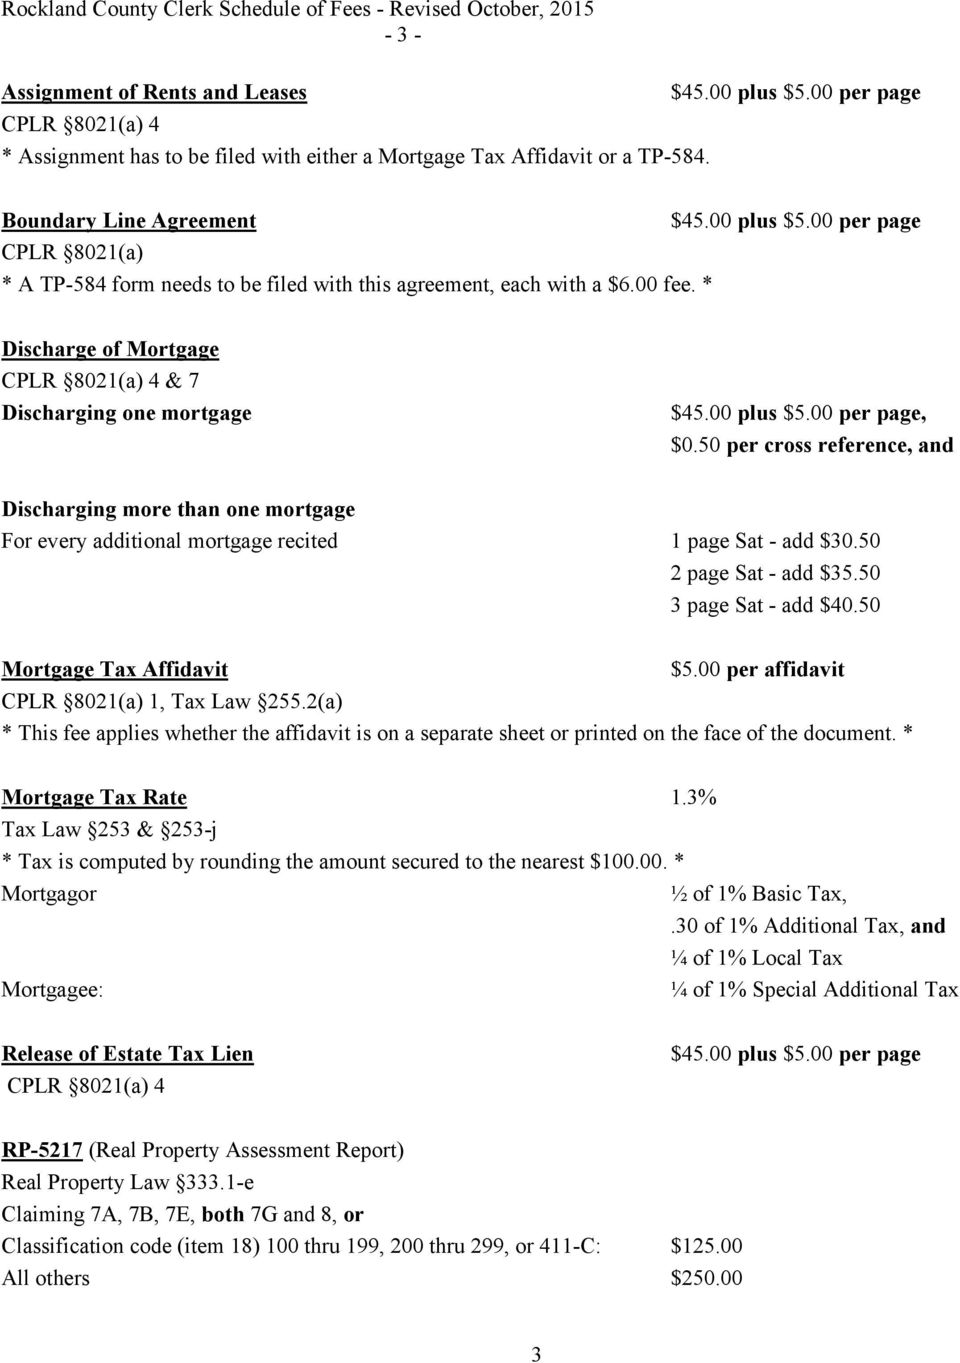 Rockland County Clerk S Office Schedule Of Fees Paul Piperato